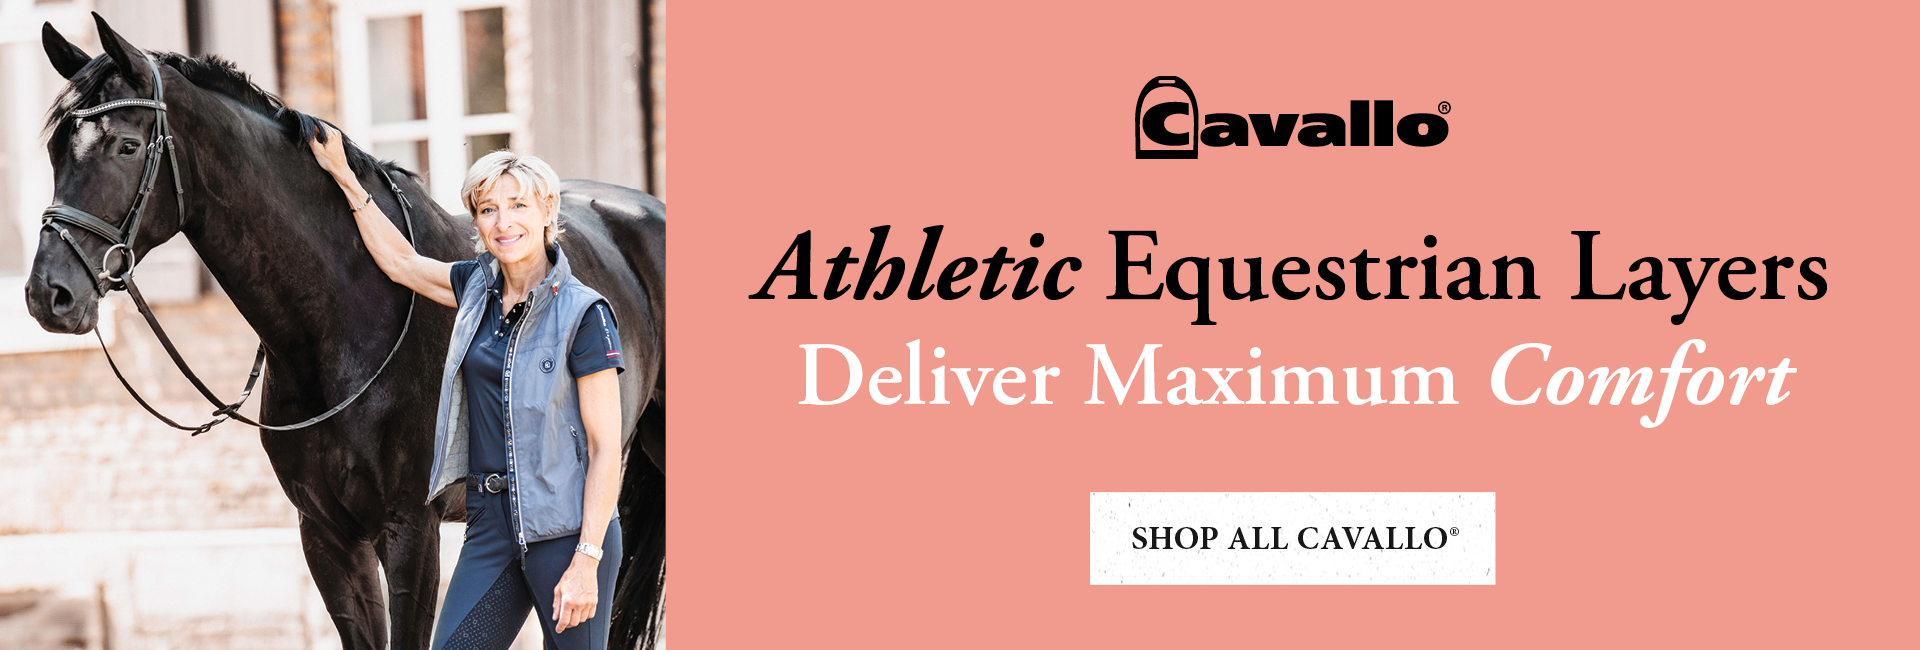 Shop Equestrian Layers from Cavallo